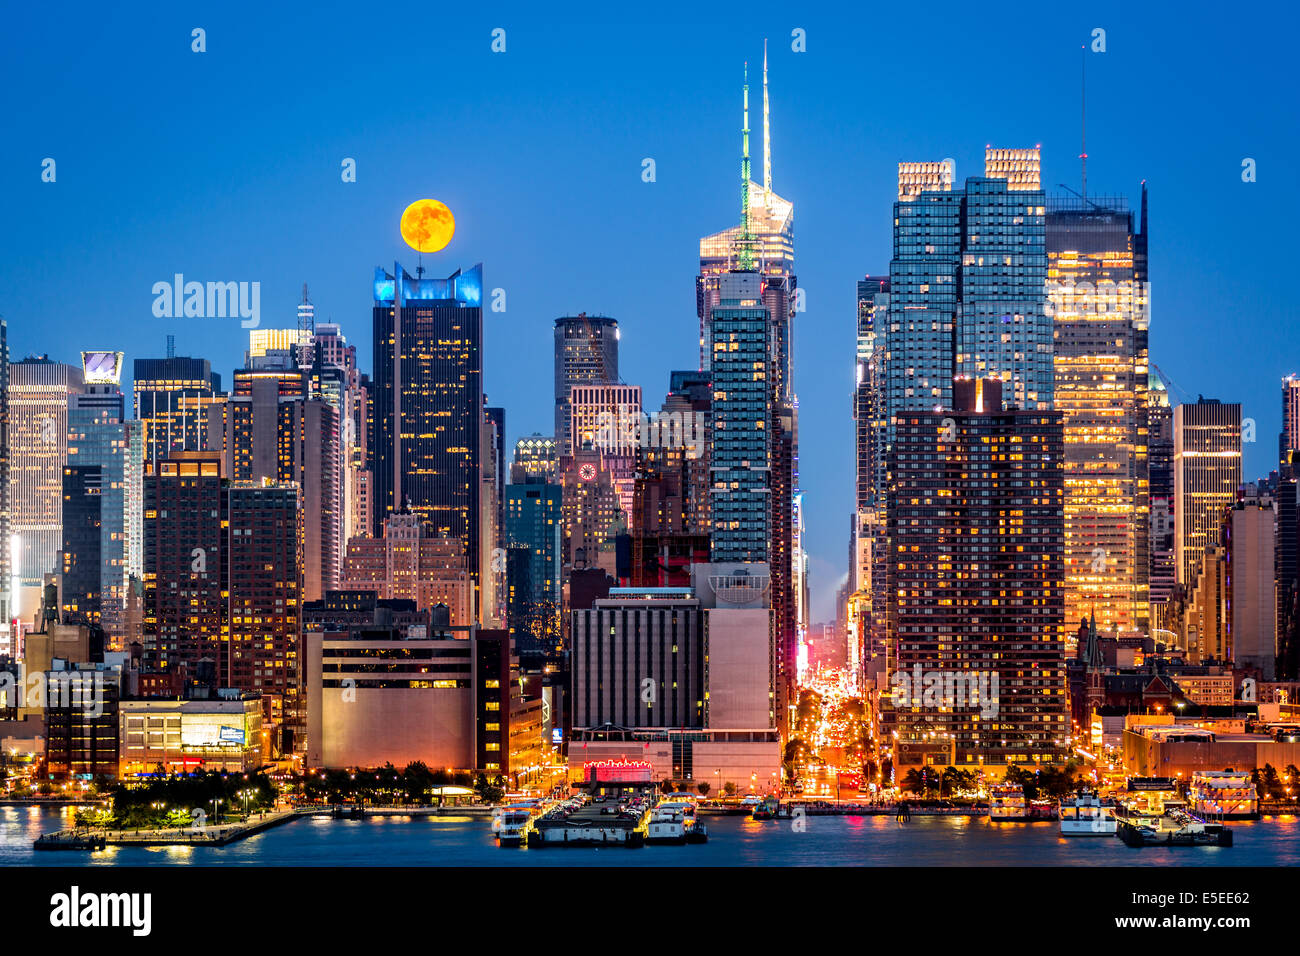 d9ca10bfafc72 Super Moon rise above the midtown Manhattan skyline - Stock Image